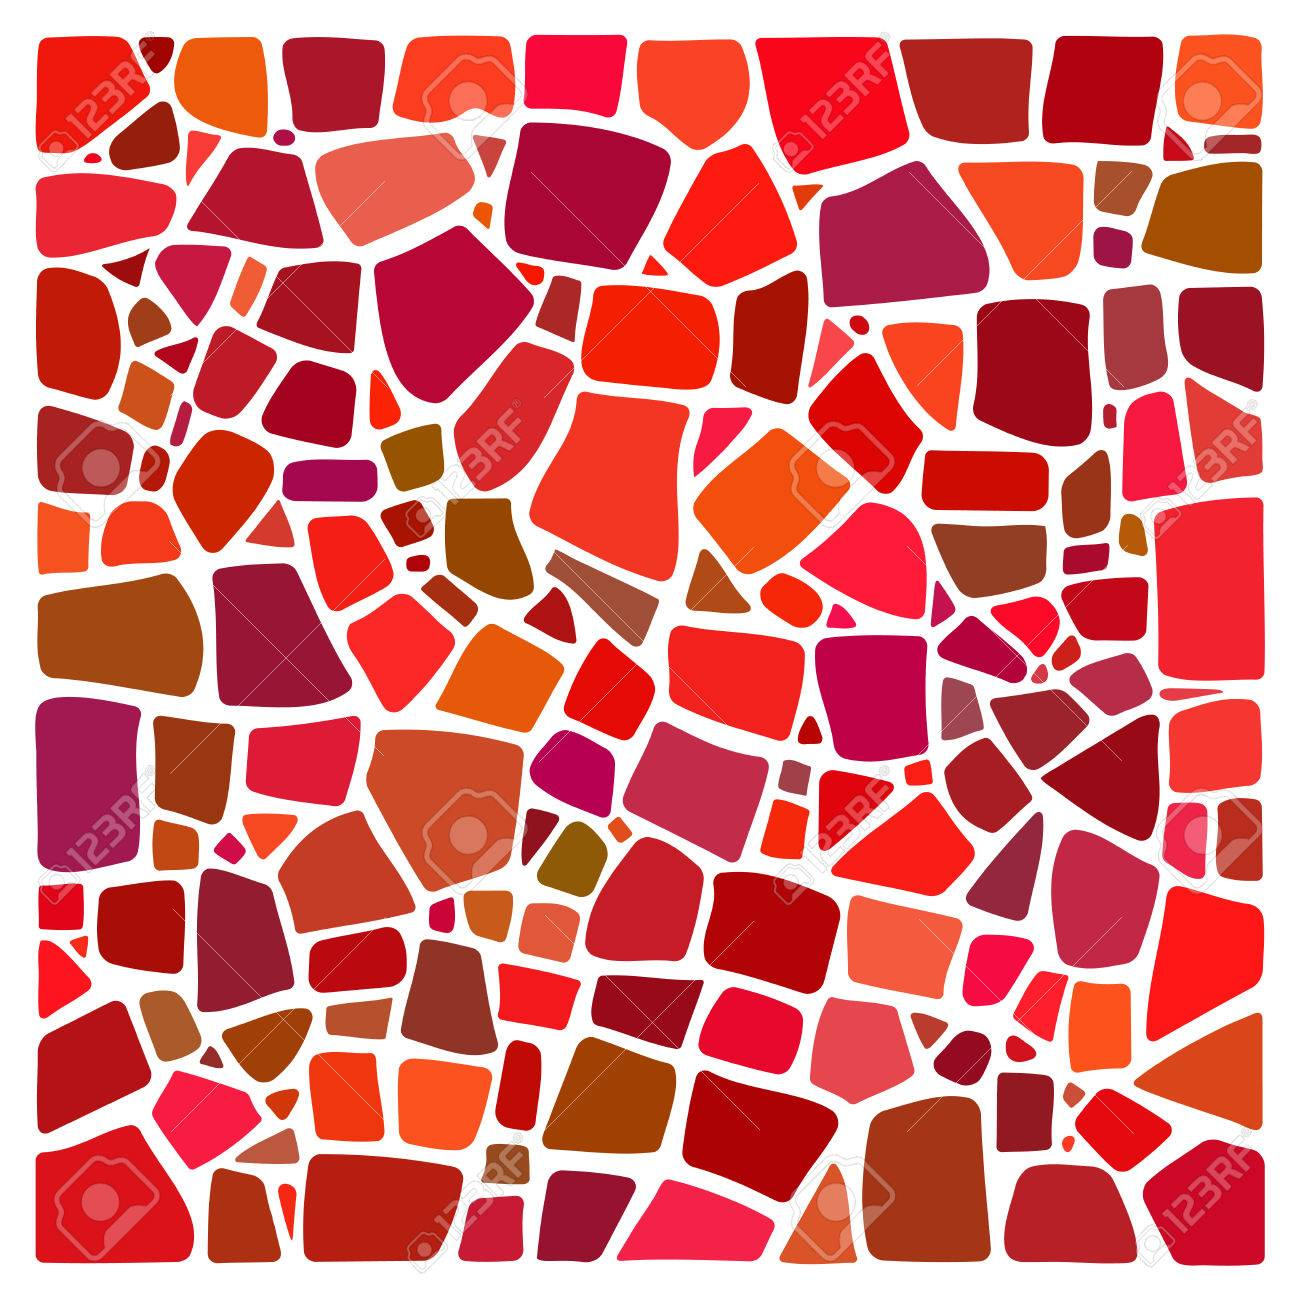 Banco De Imagens   Colorful Background In Mosaic Tile Style. NOT A PATTERN. Mosaic  Style Square. Ceramic Tile Fragments. Abstract Mosaic Texture. Mosaic ...